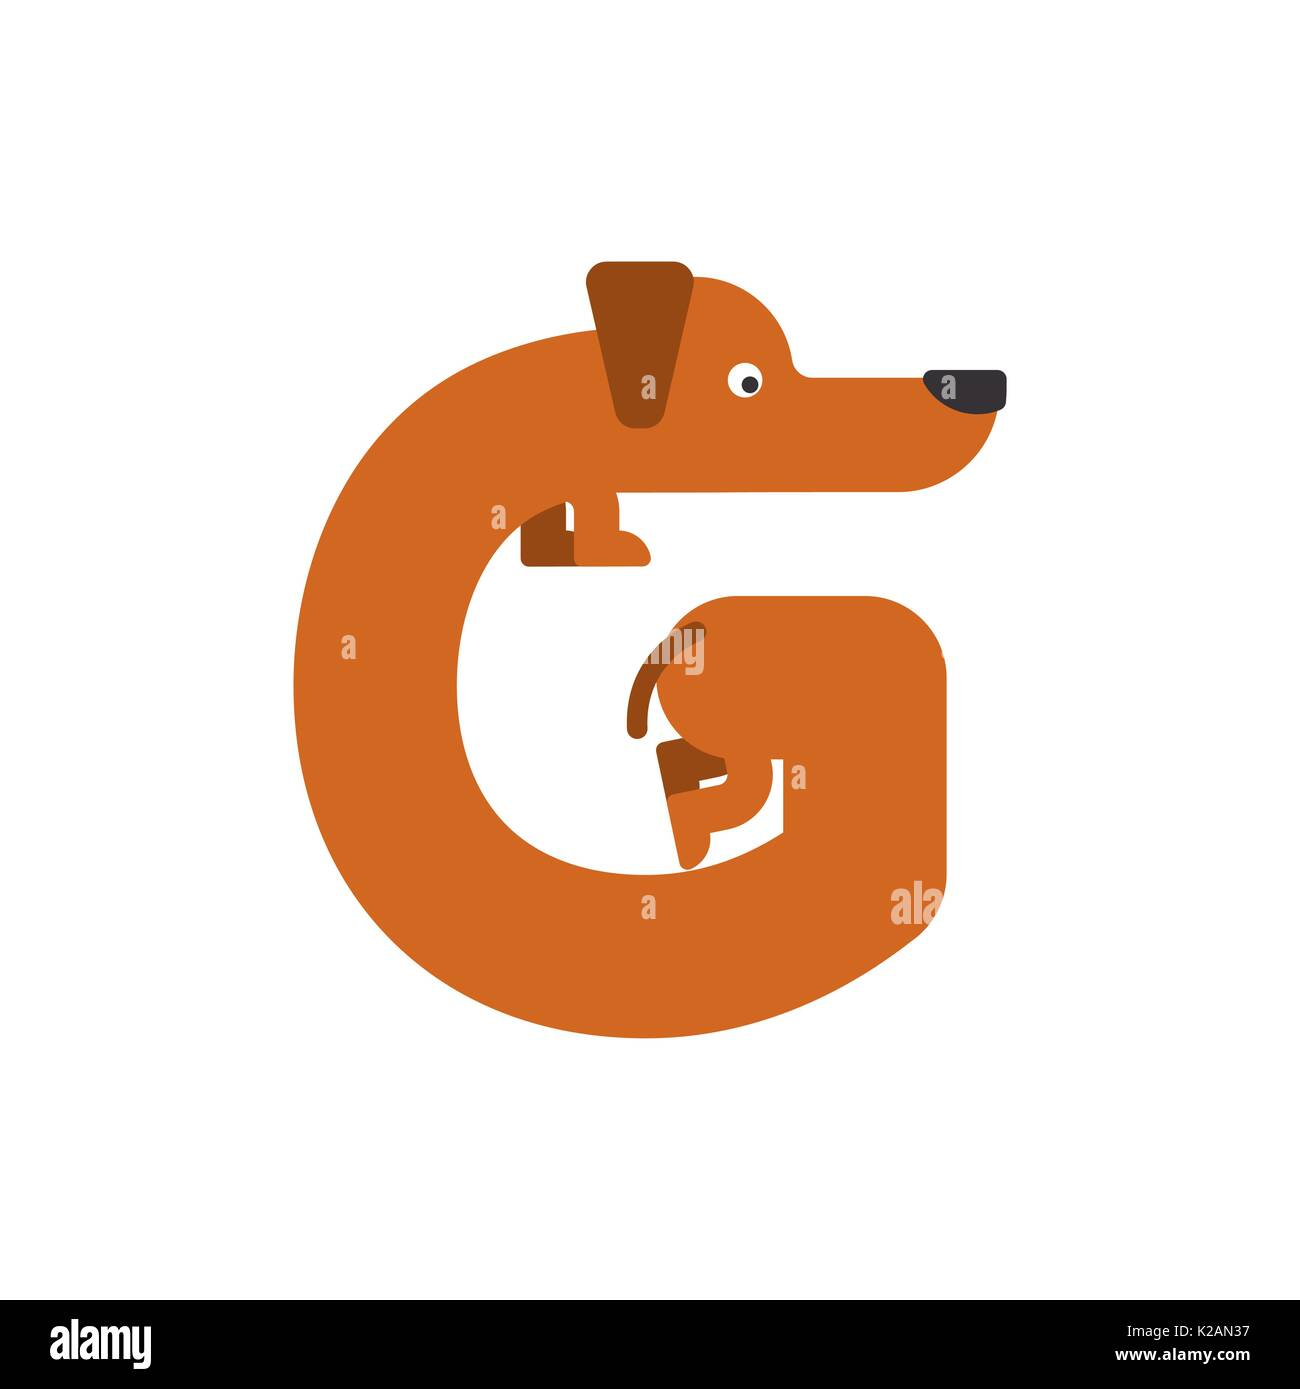 Letter G Vectors Stock Photos Letter G Vectors Stock Images Alamy